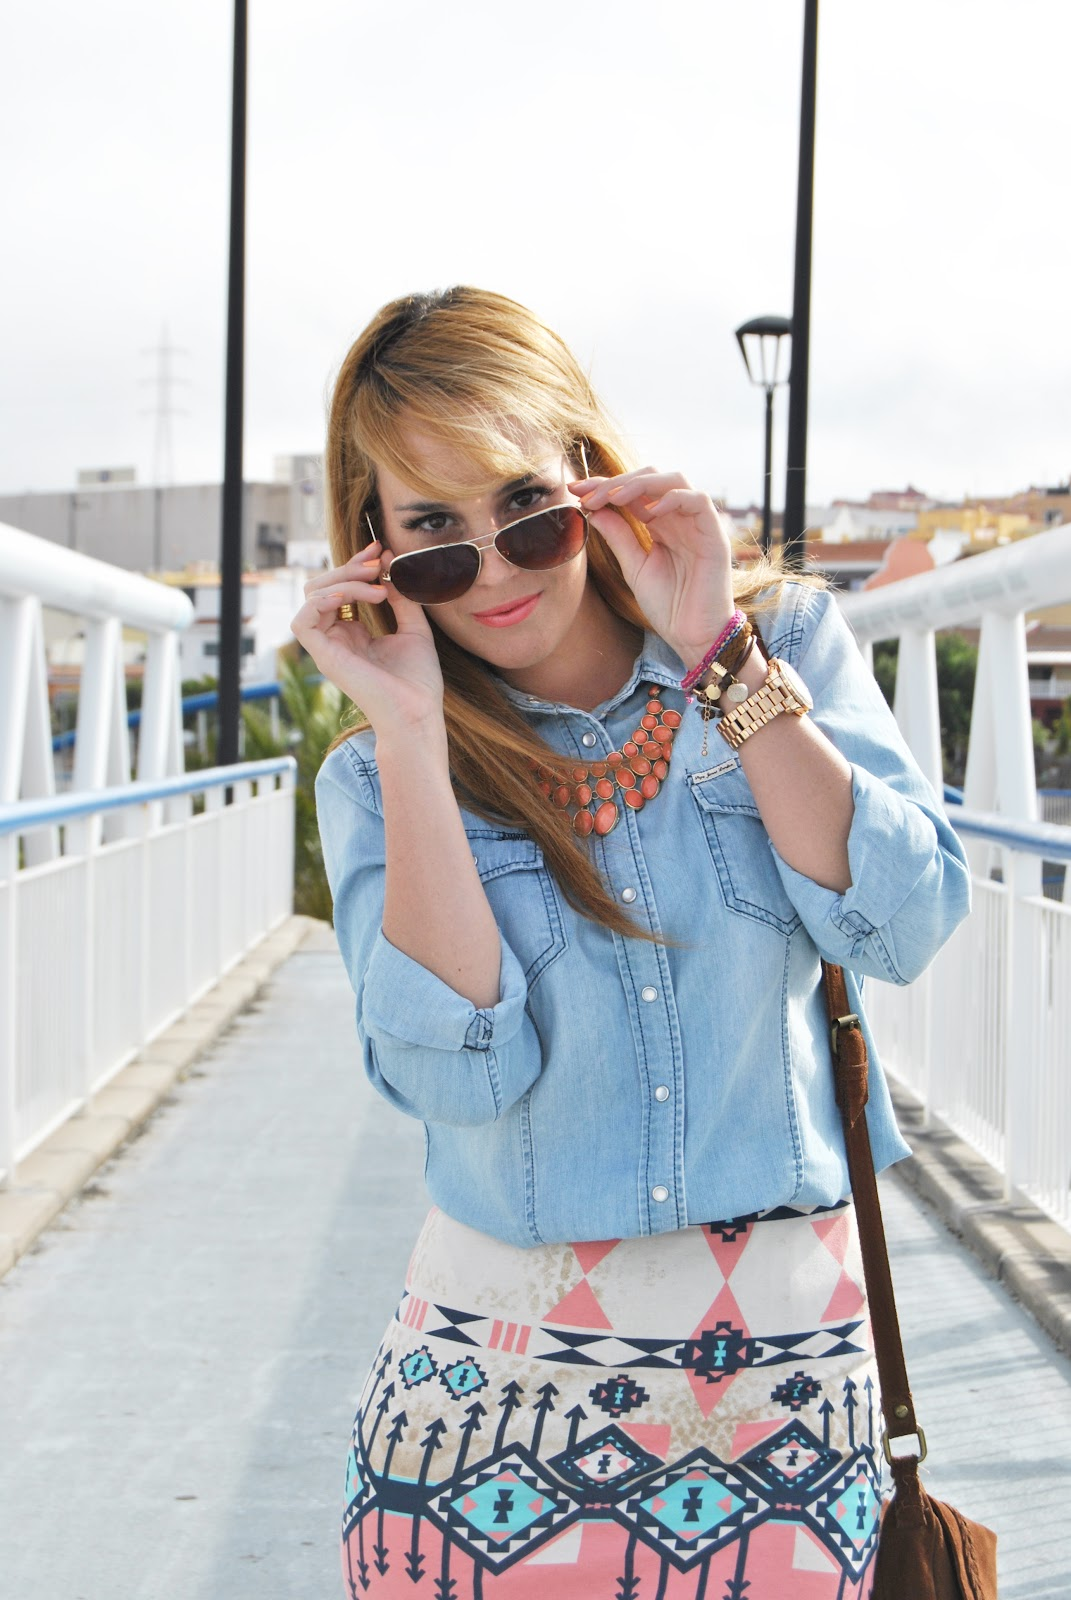 nery hdez, bulldog lovely pepa, denim, bolso flecos